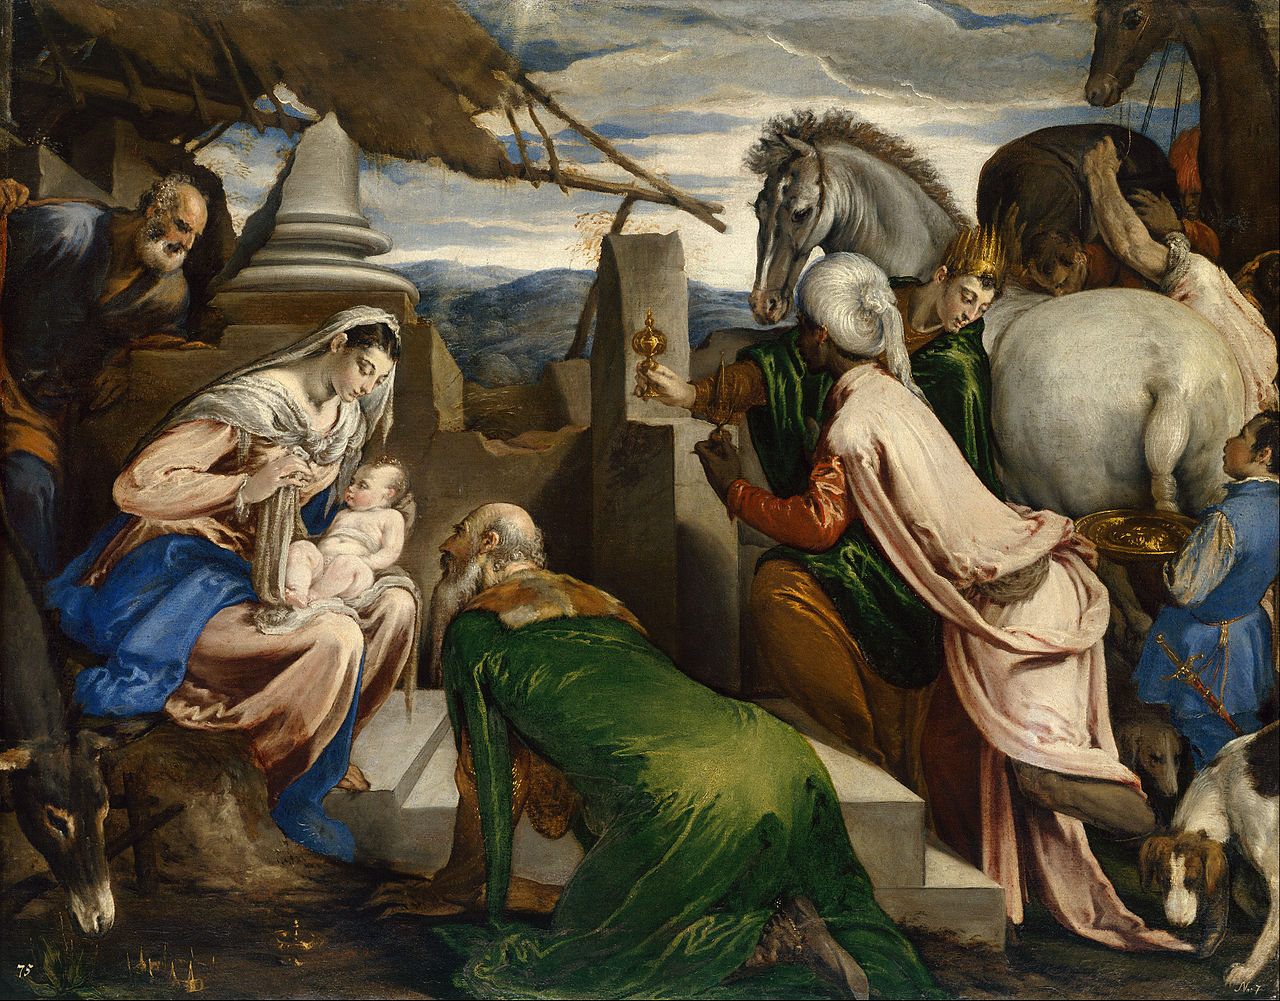 1280px-Jacopo_da_Ponte,called_Jacopo_Bassano_-_Adoration_of_the_Magi_-_Google_Art_Project.jpg